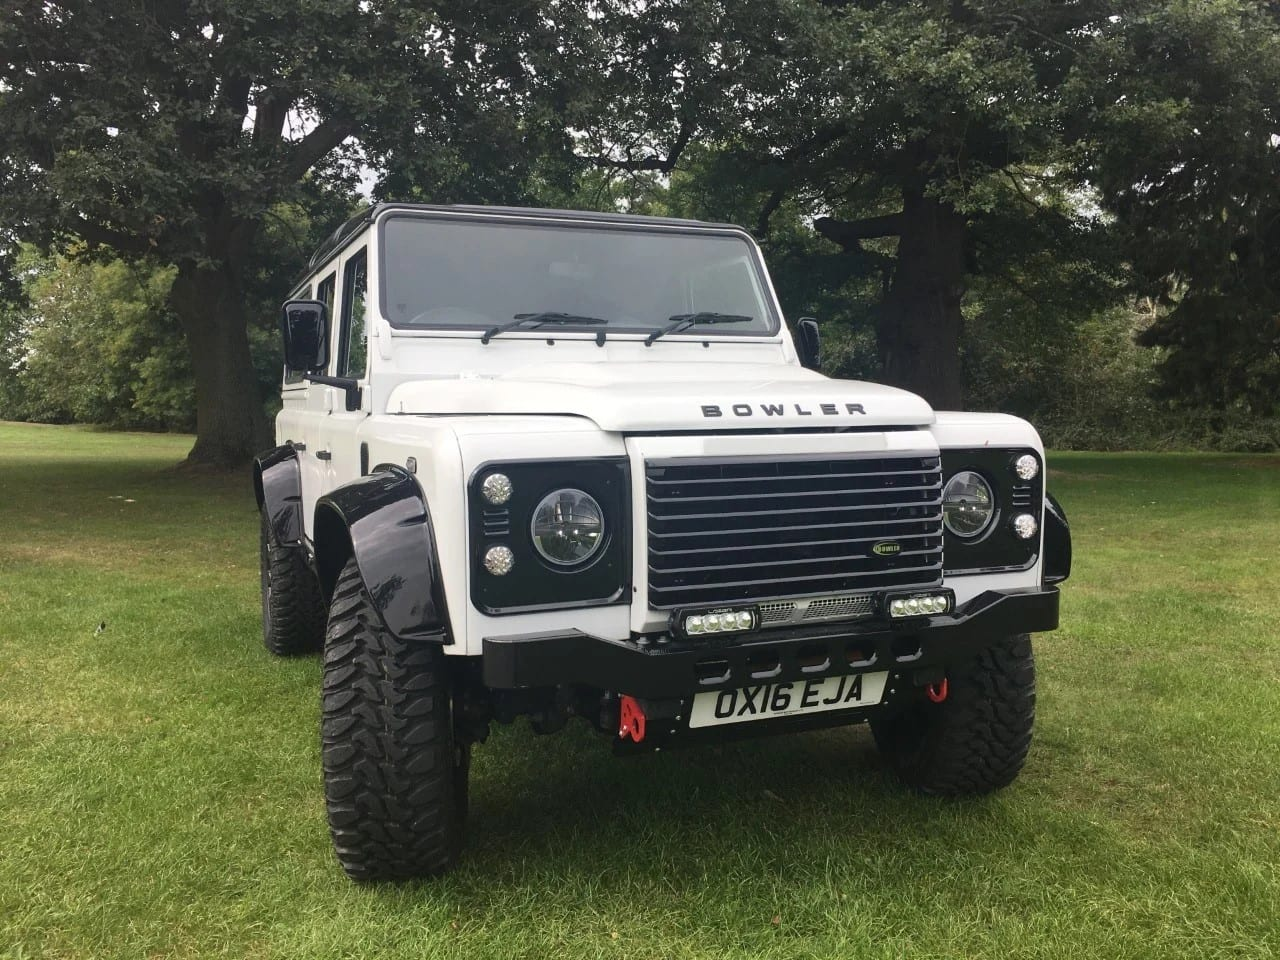 2016(16) Land Rover DEFENDER 110 BOWLER 180bhp 110 Station Wagon